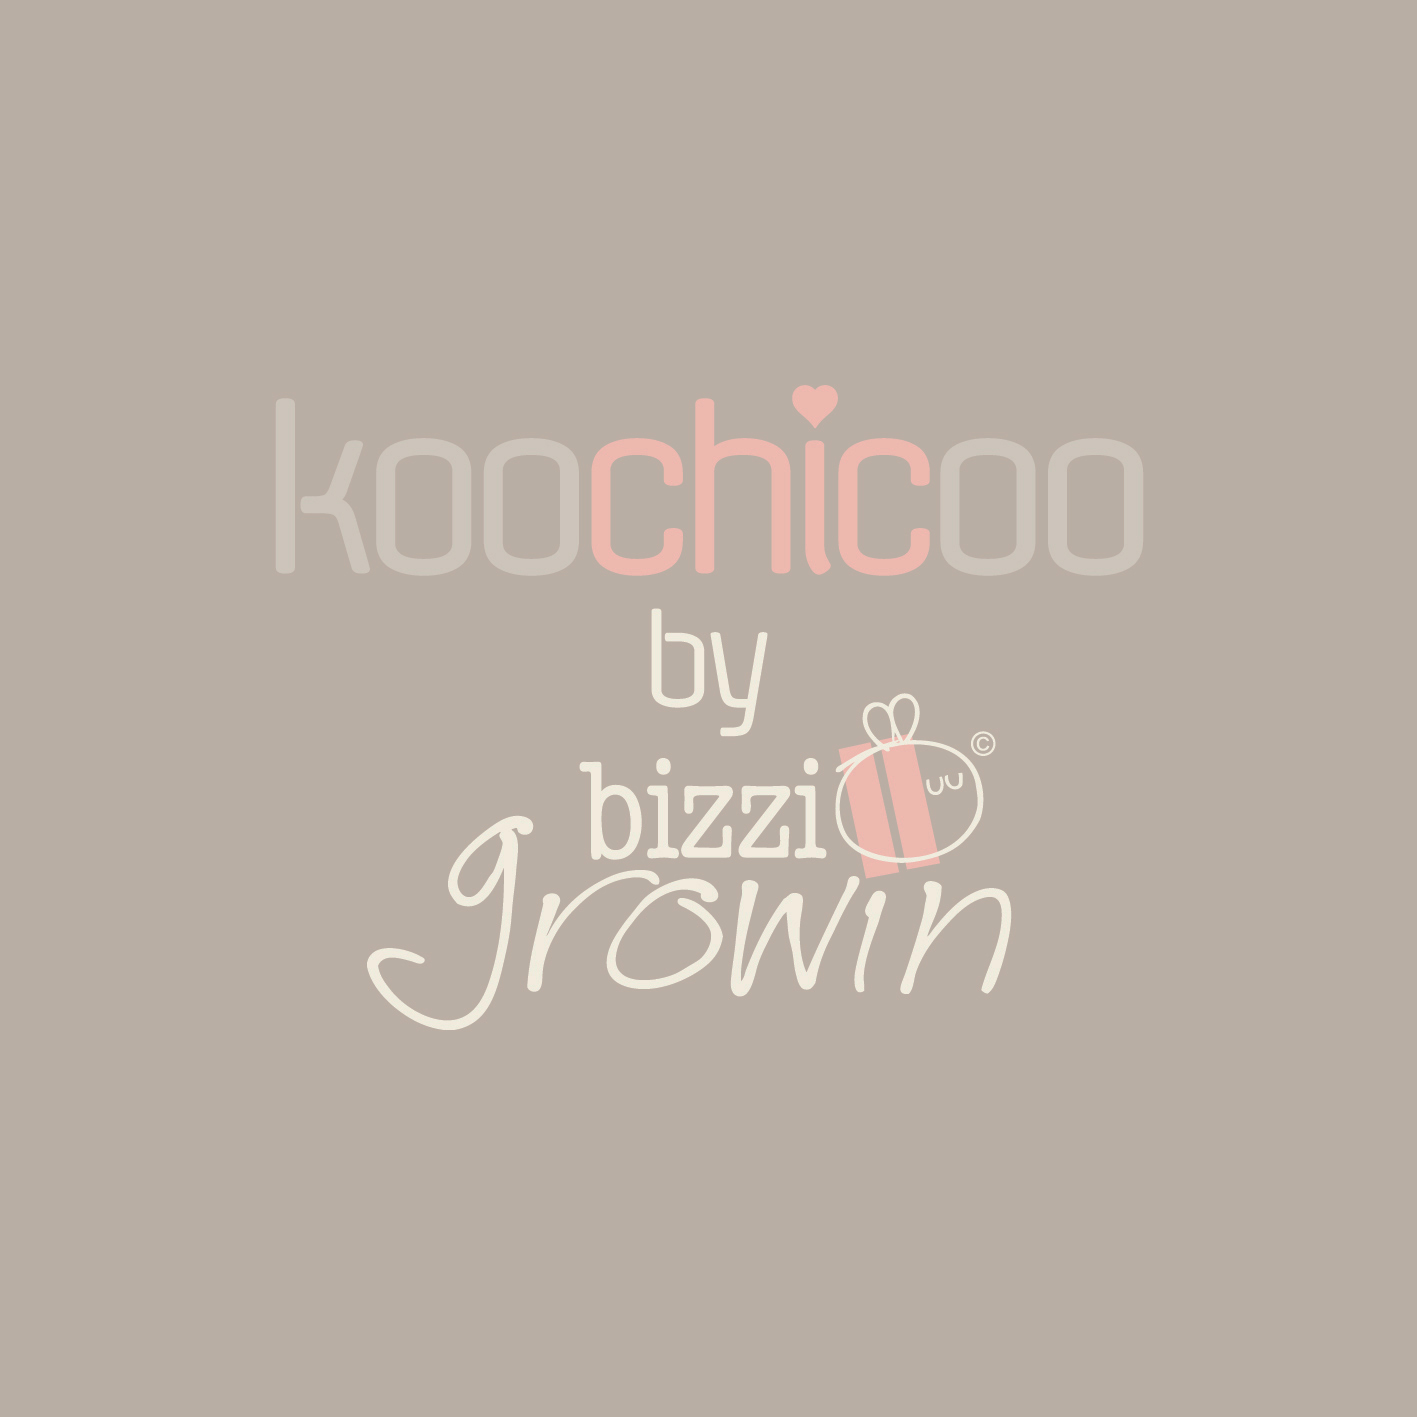 Koochicoo by Bizzi Growin Logo